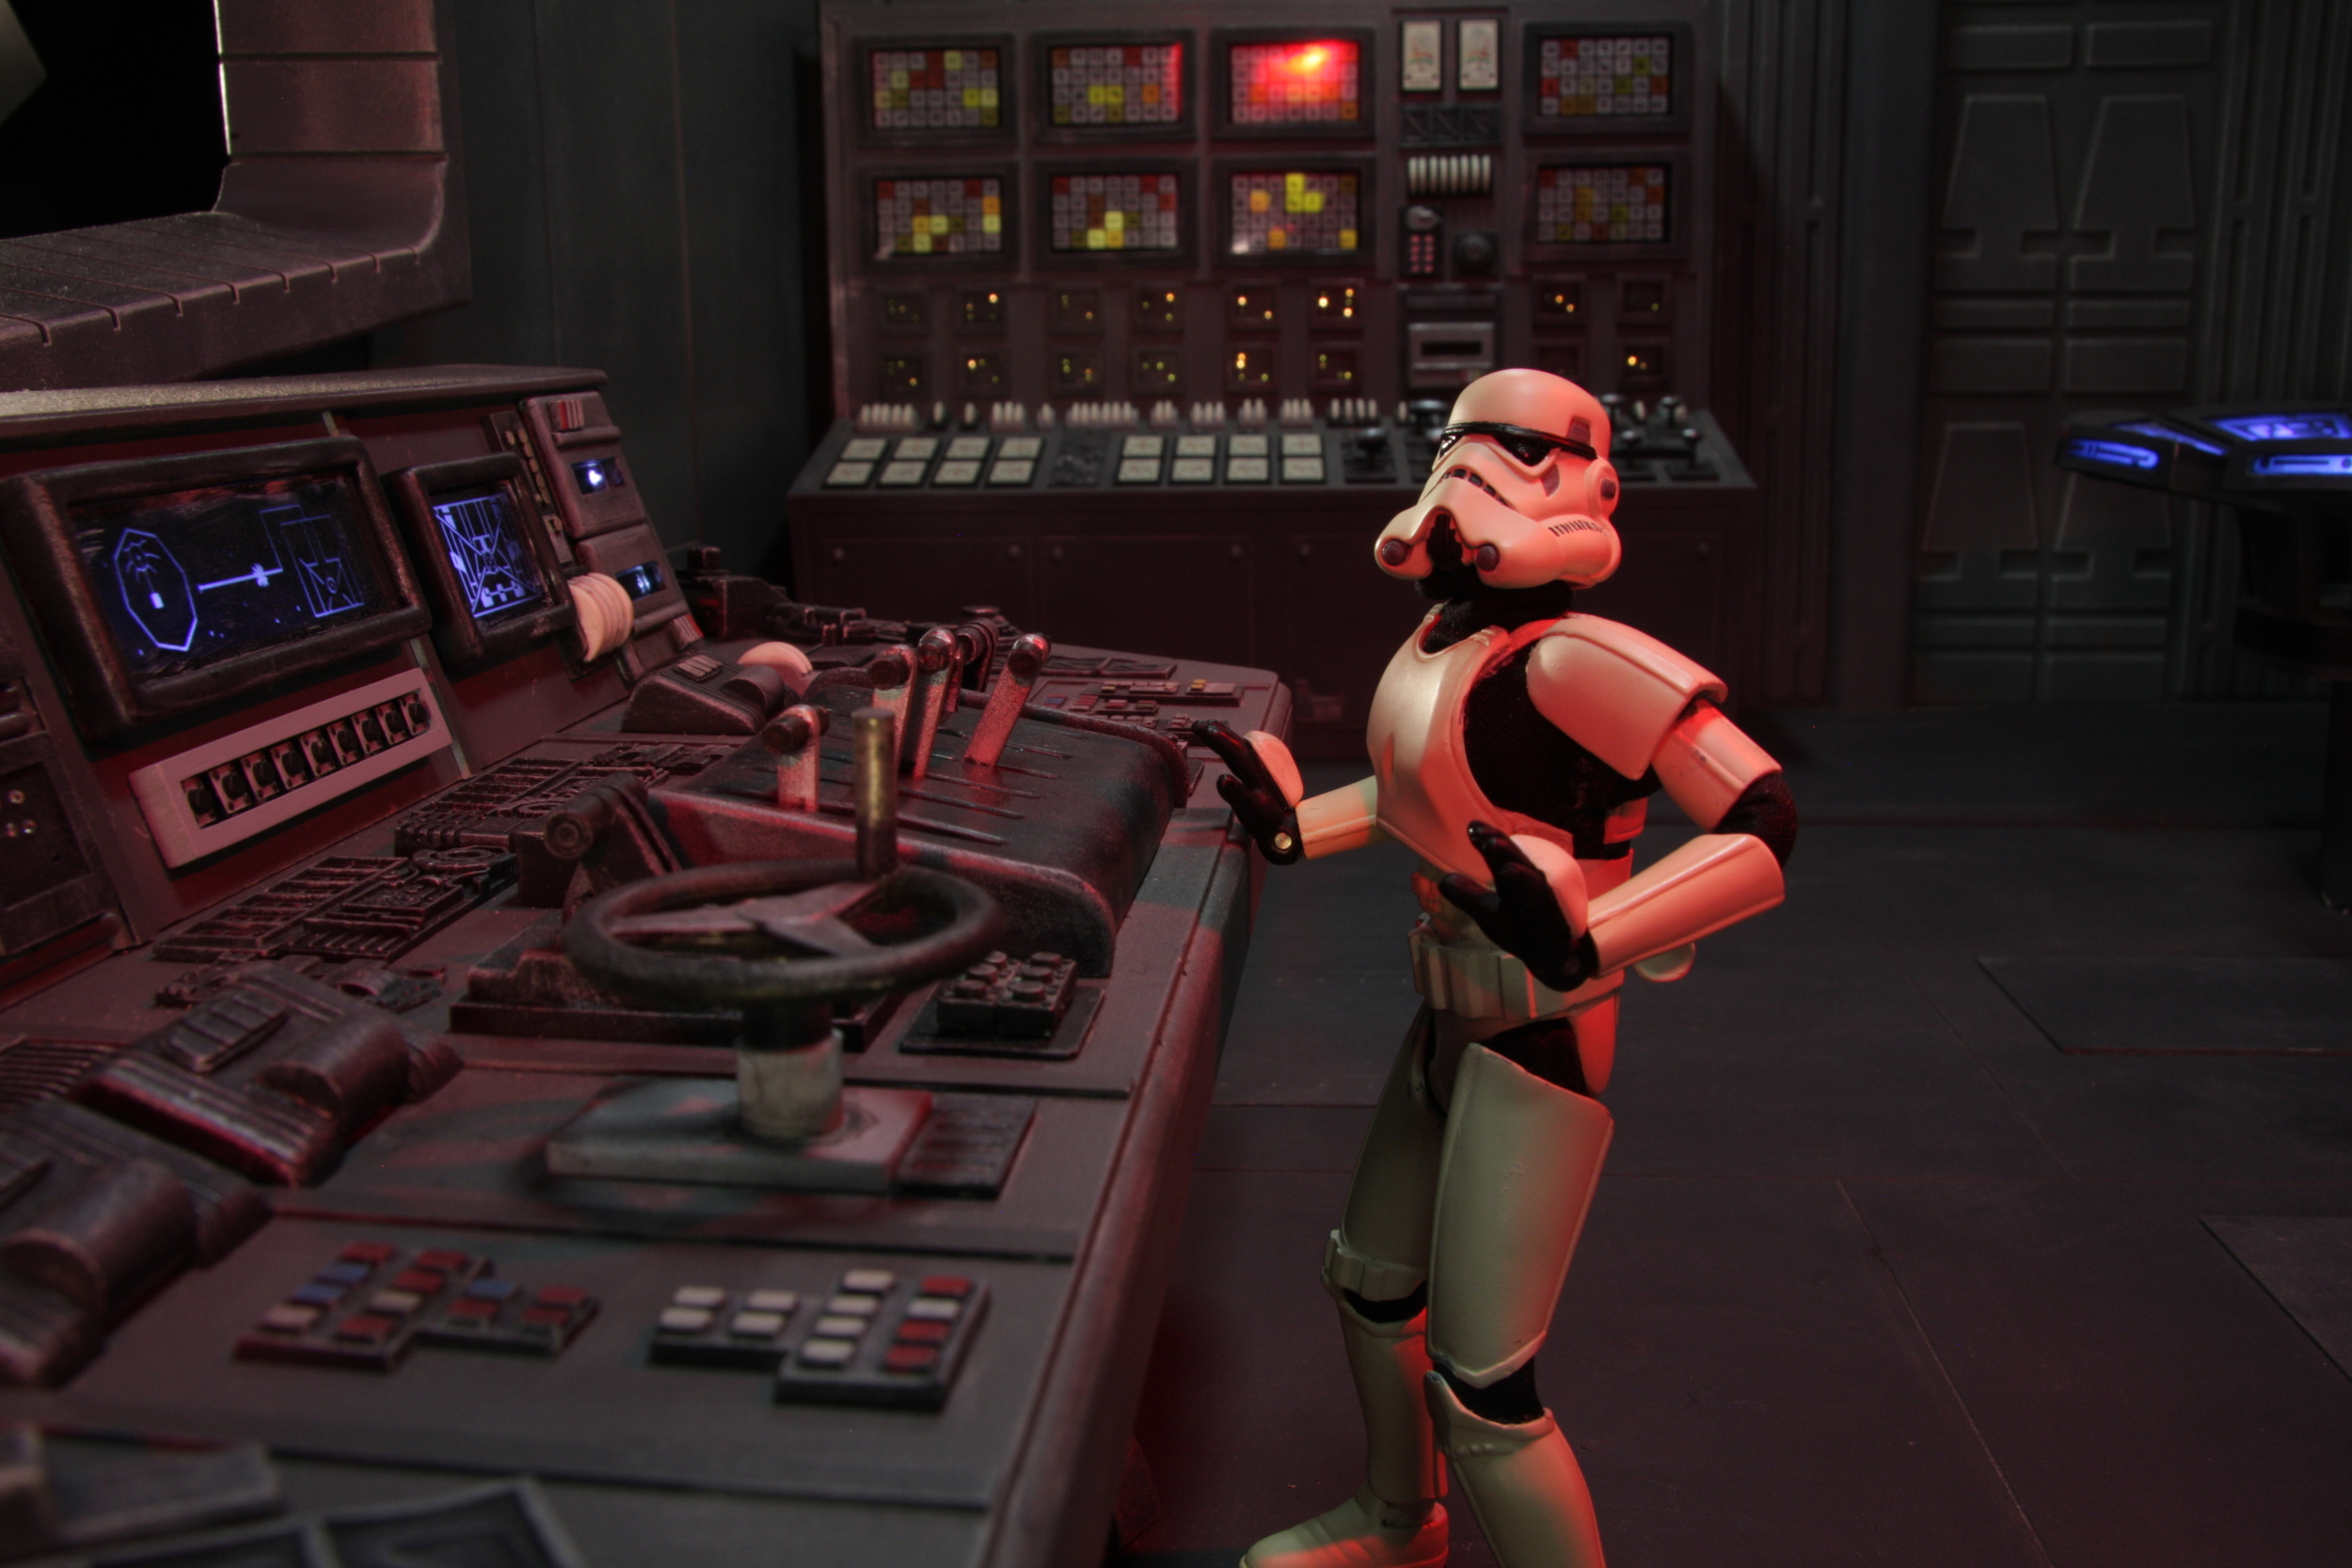 Robot Chicken Star Wars 2 Image 19.jpg